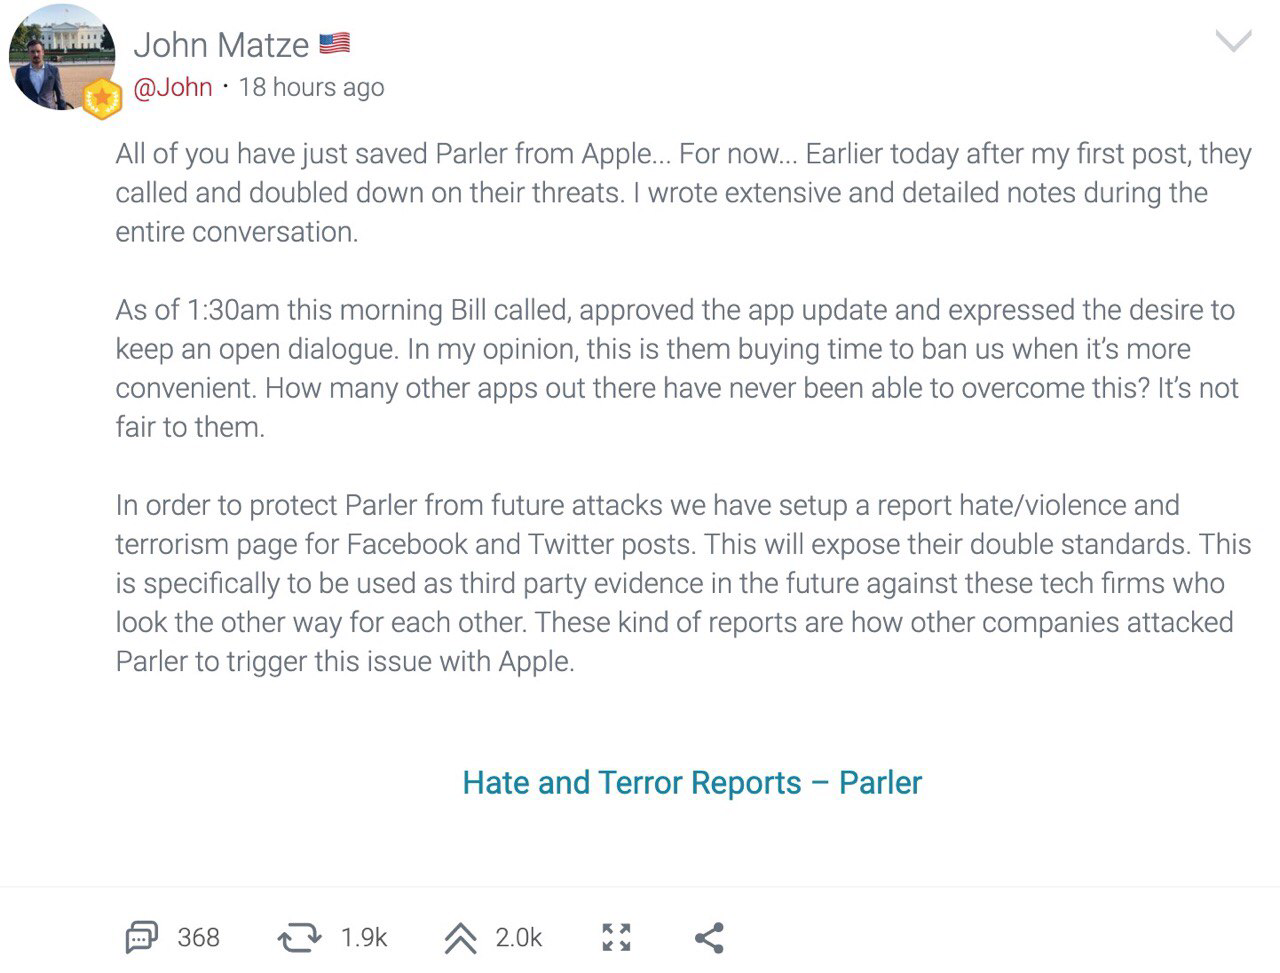 The post from John Matze claiming that Apple will ban Parler when it's more convenient.